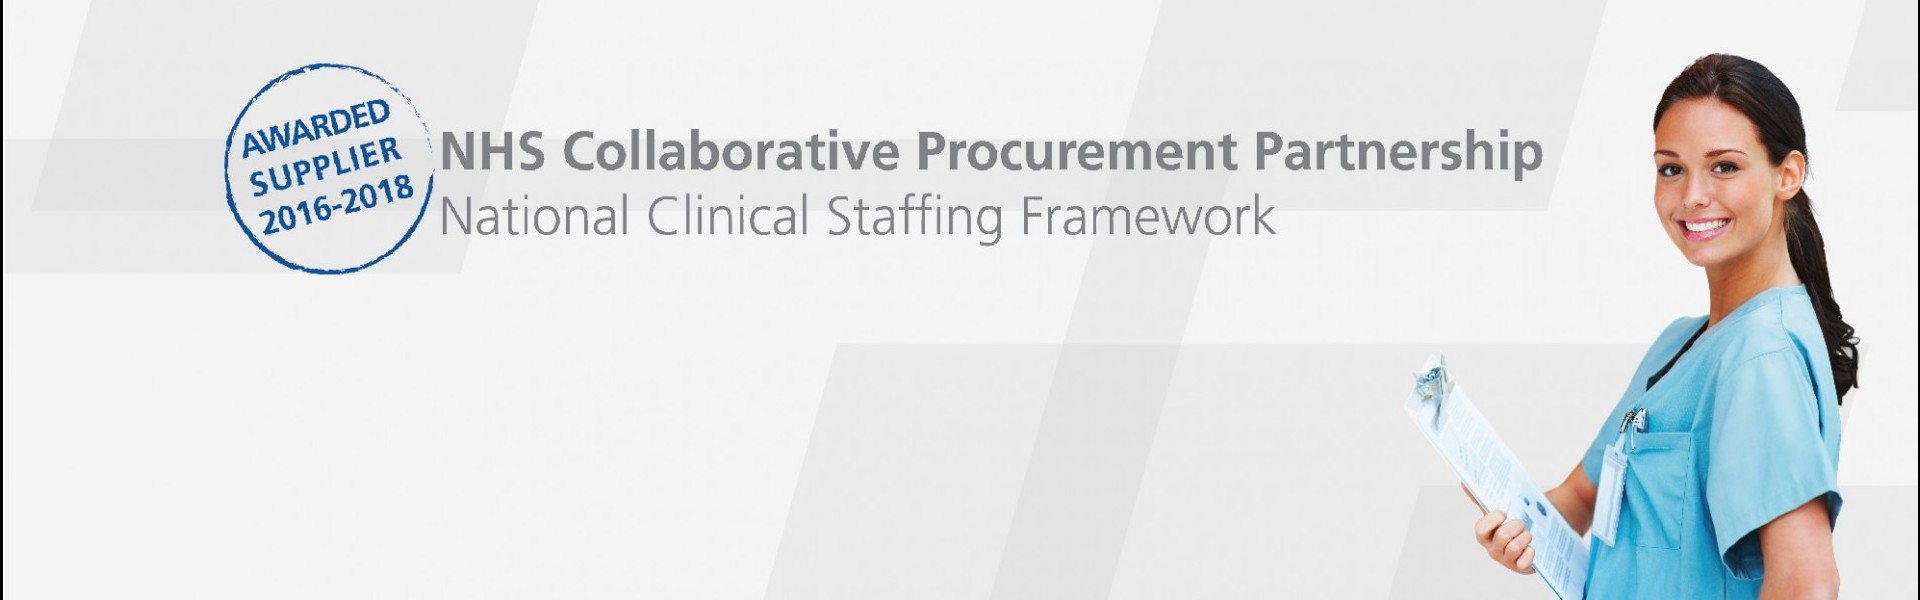 NHS Collaborative Procurement Partnership